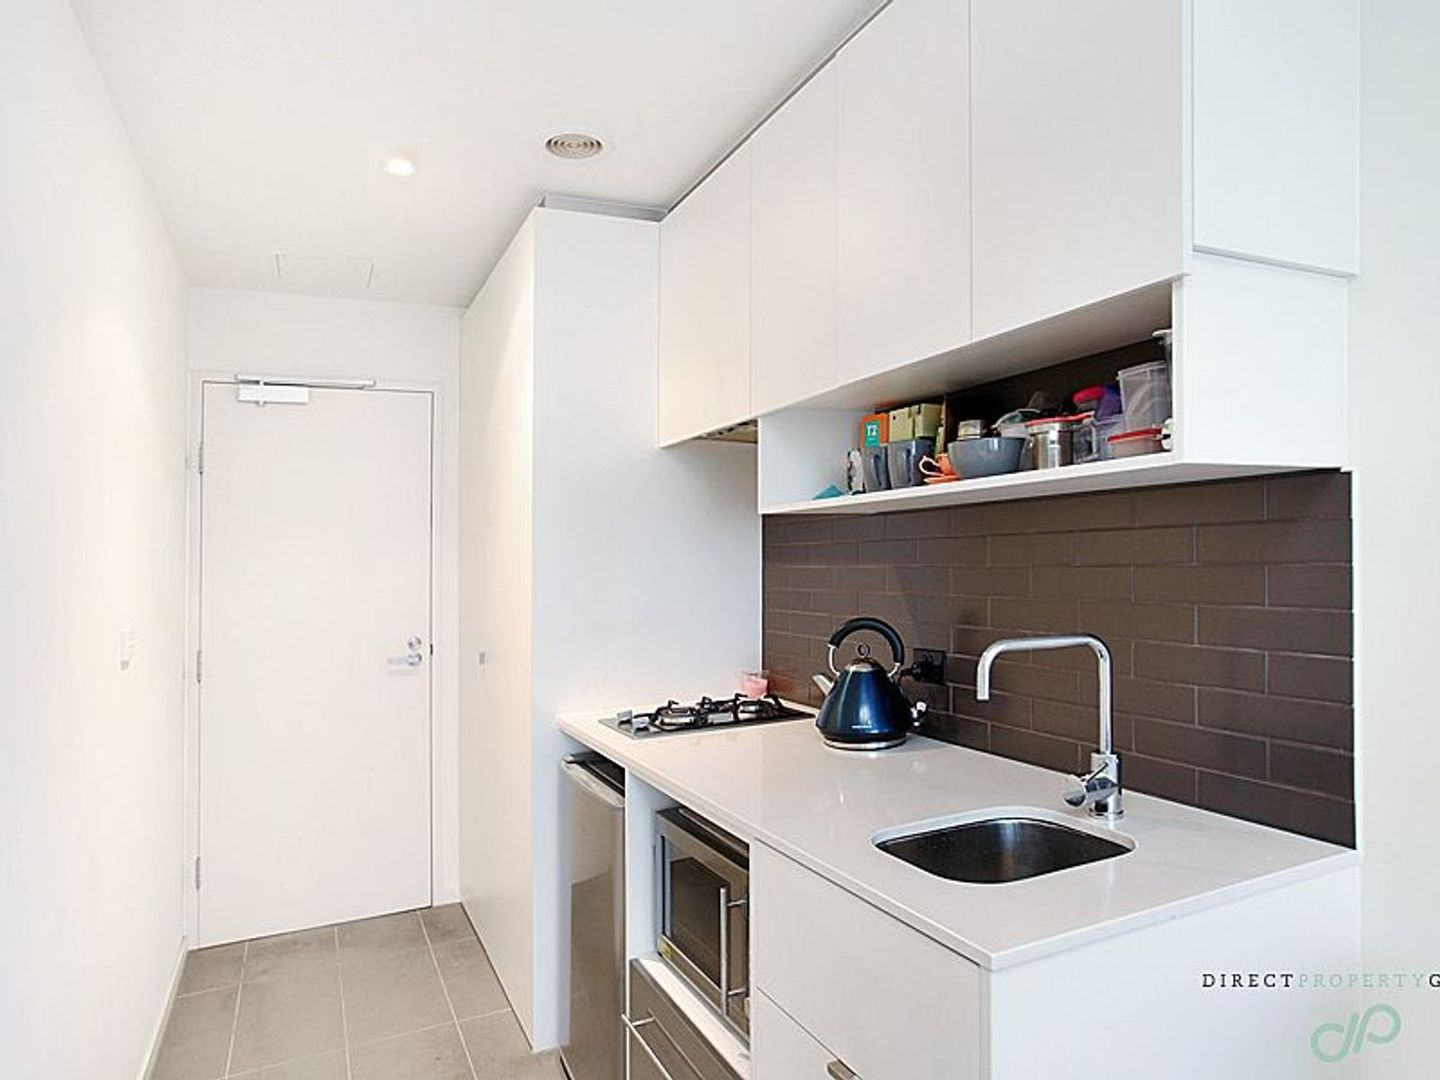 1 bedrooms Apartment / Unit / Flat in 907/243 Franklin Street MELBOURNE VIC, 3000